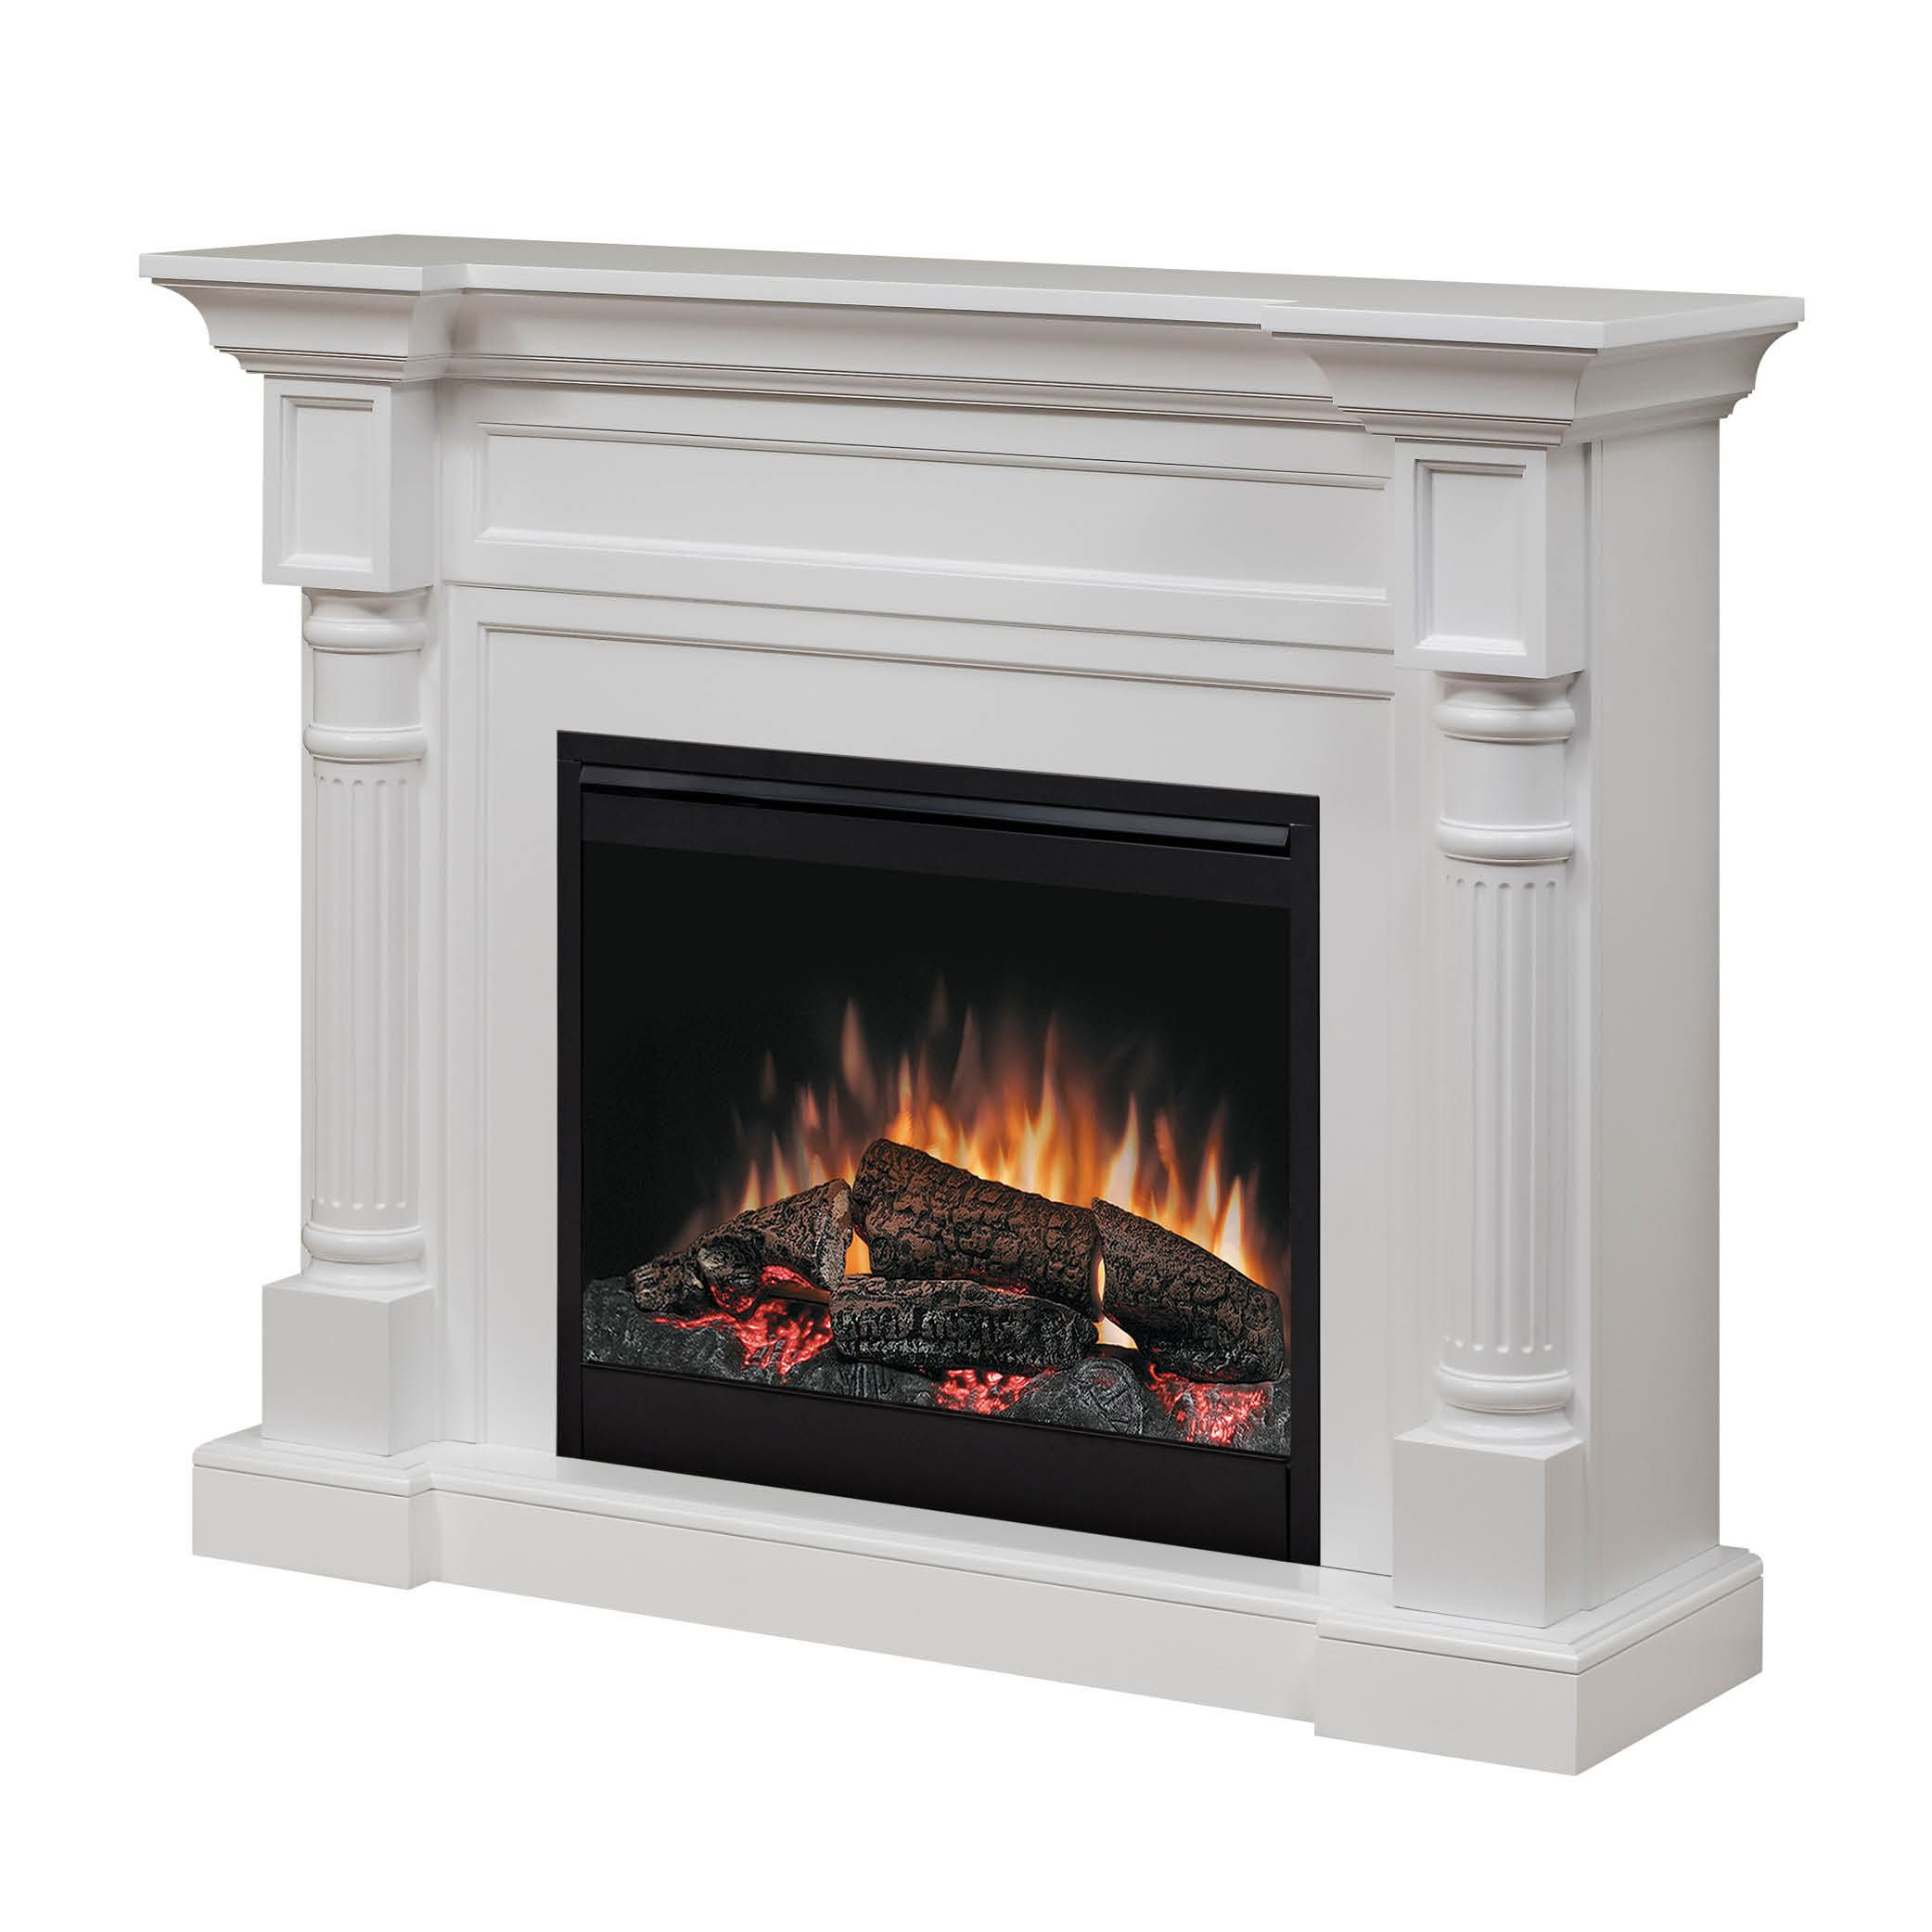 Winston 2kw Electraflame 26 Inch Electric Fire With Mantel Set It